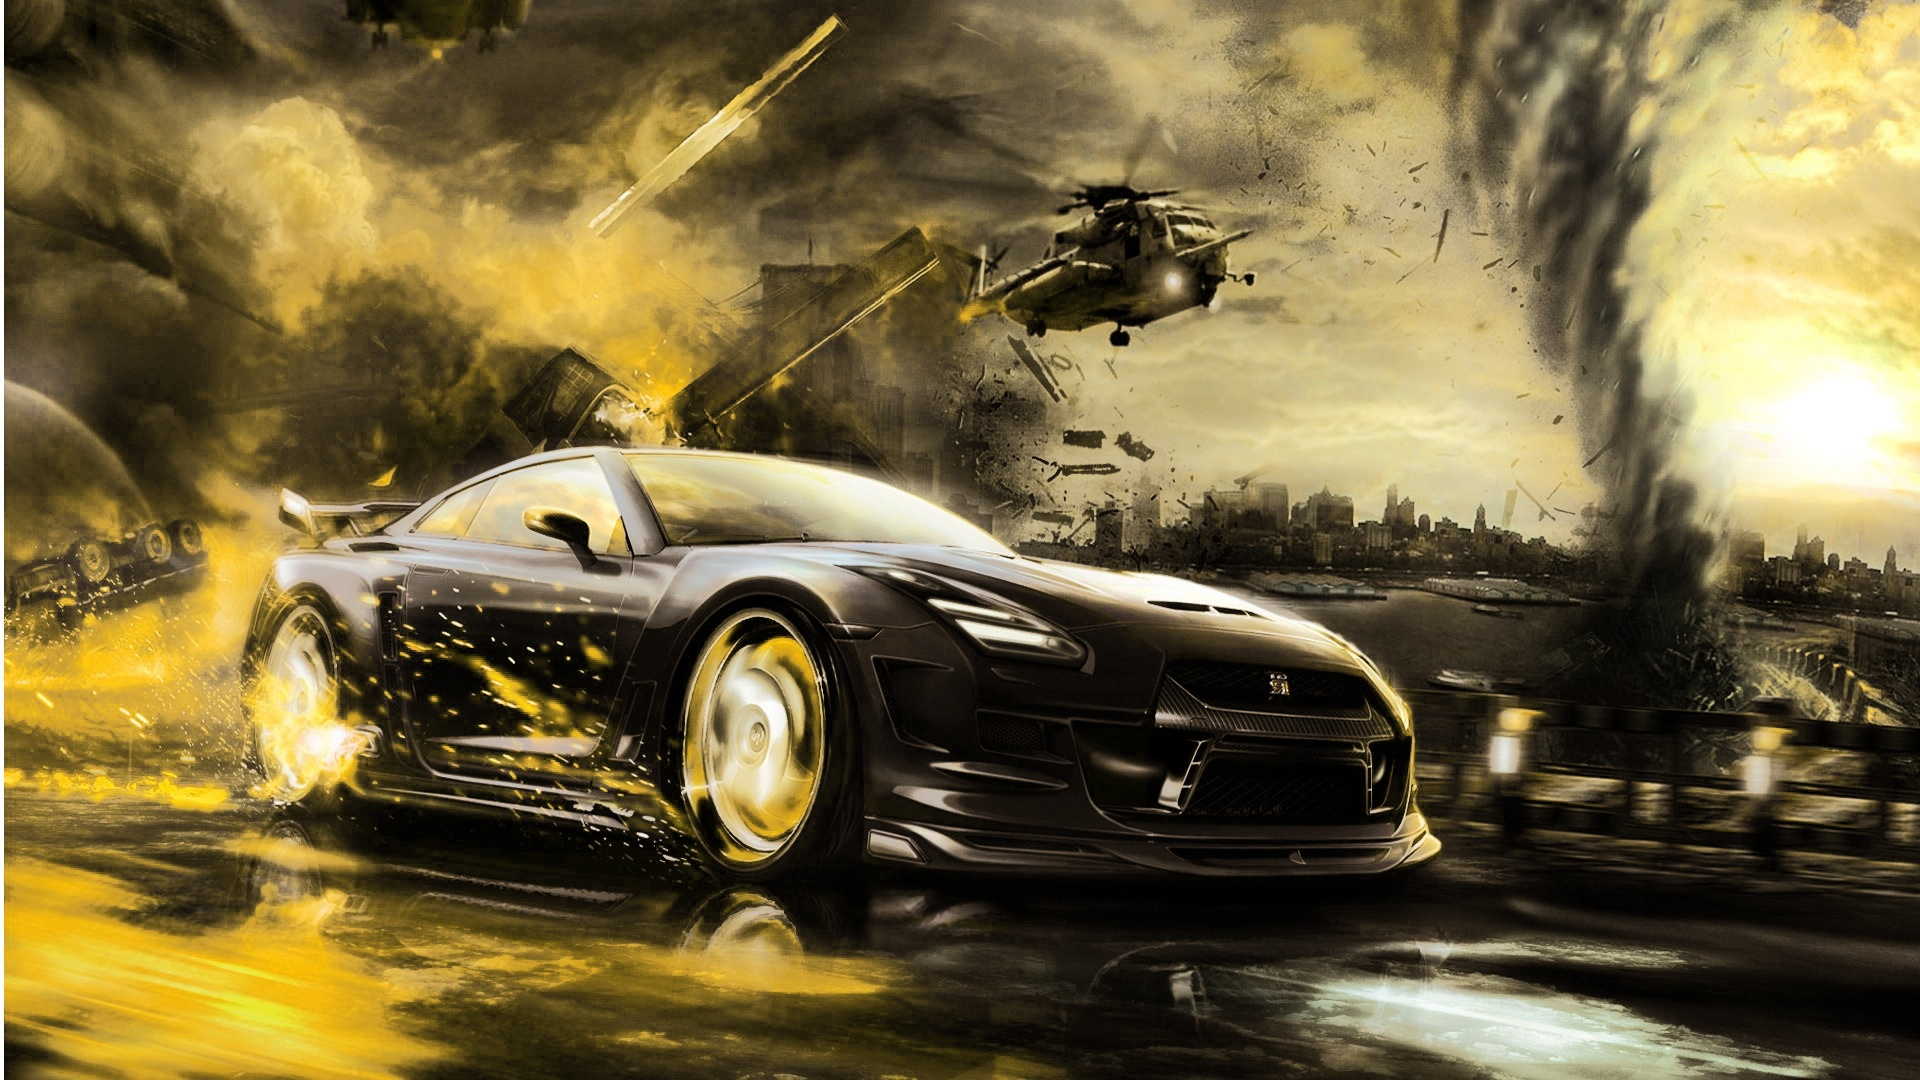 Awesome Halicopter Car HD Wallpapers 1080p   WallpaperAsk 1920x1080